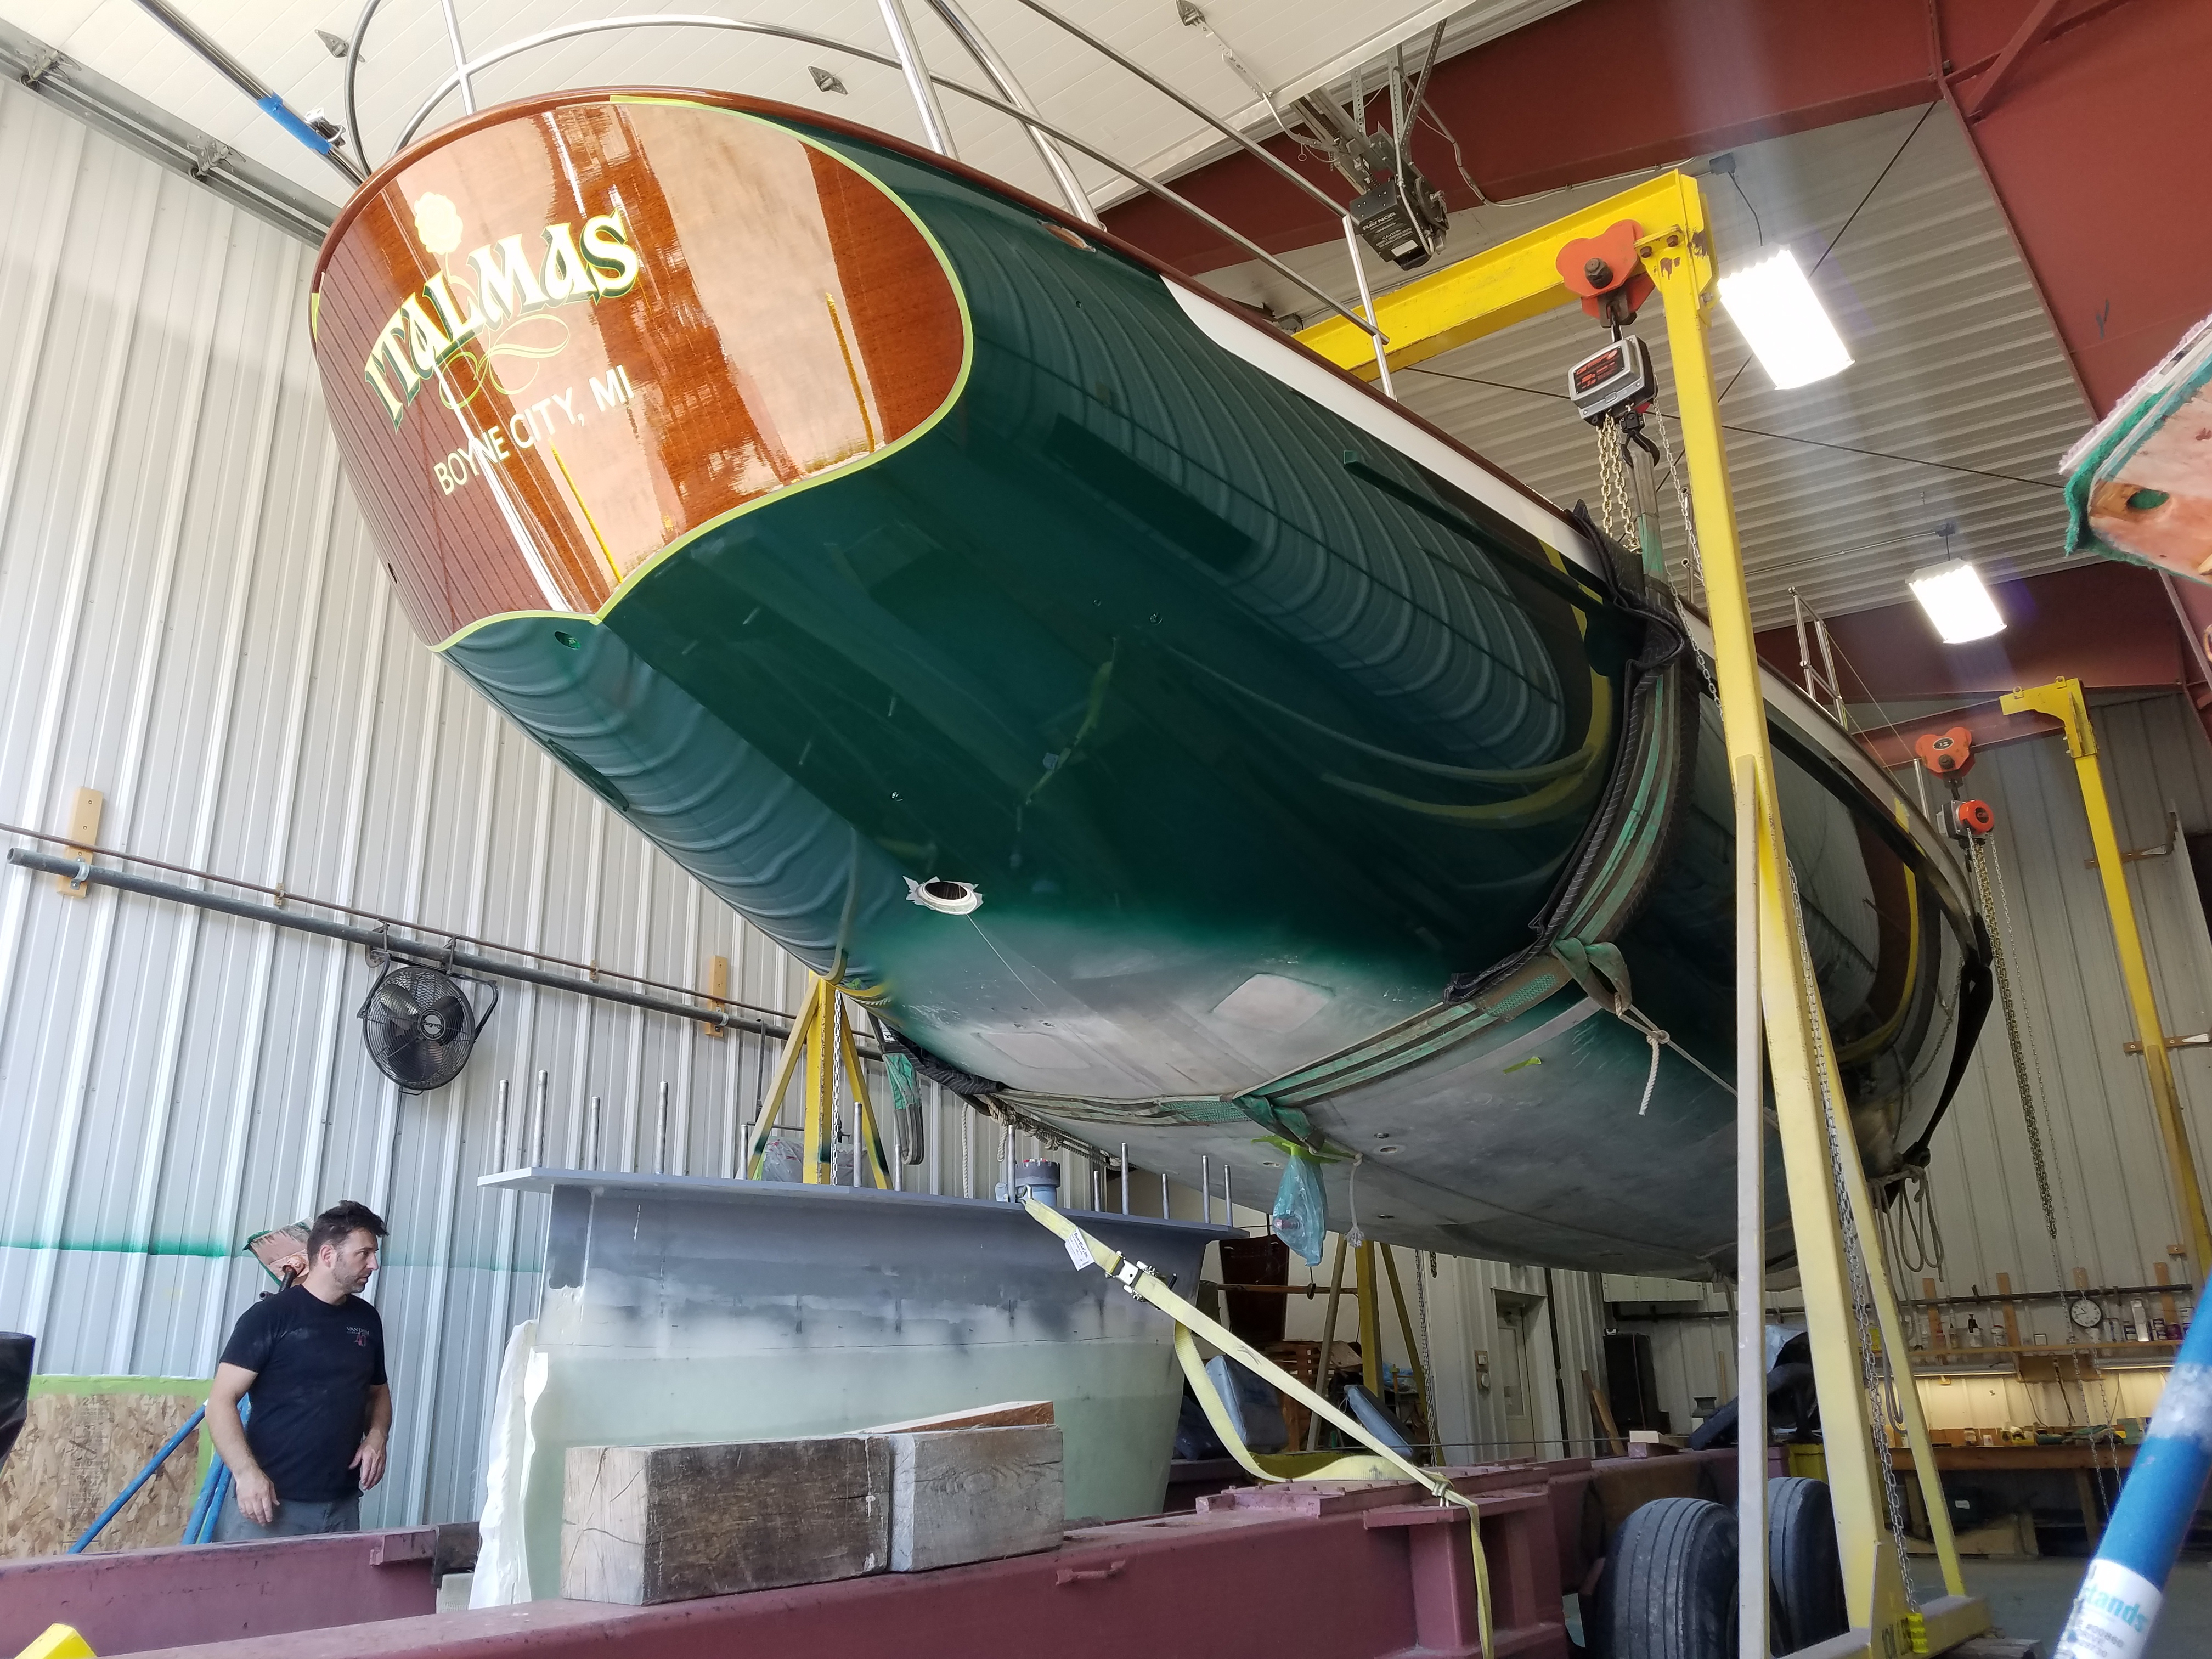 Staging test fit of keel on Italmas